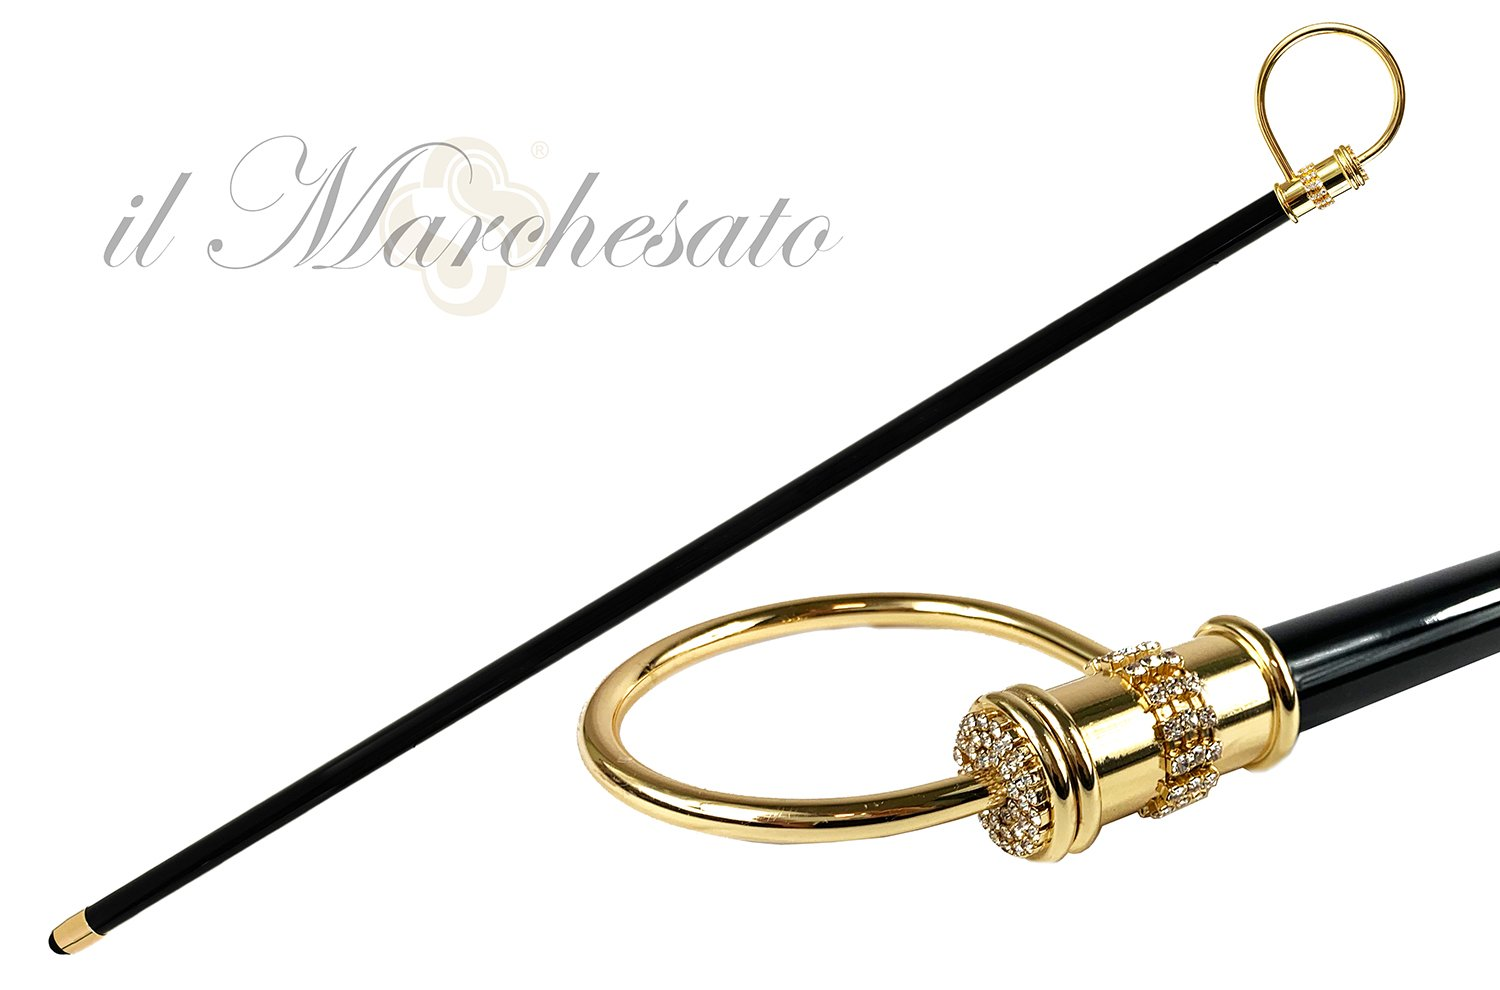 Original collectible Walking stick with crystals - IL MARCHESATO LUXURY UMBRELLAS, CANES AND SHOEHORNS